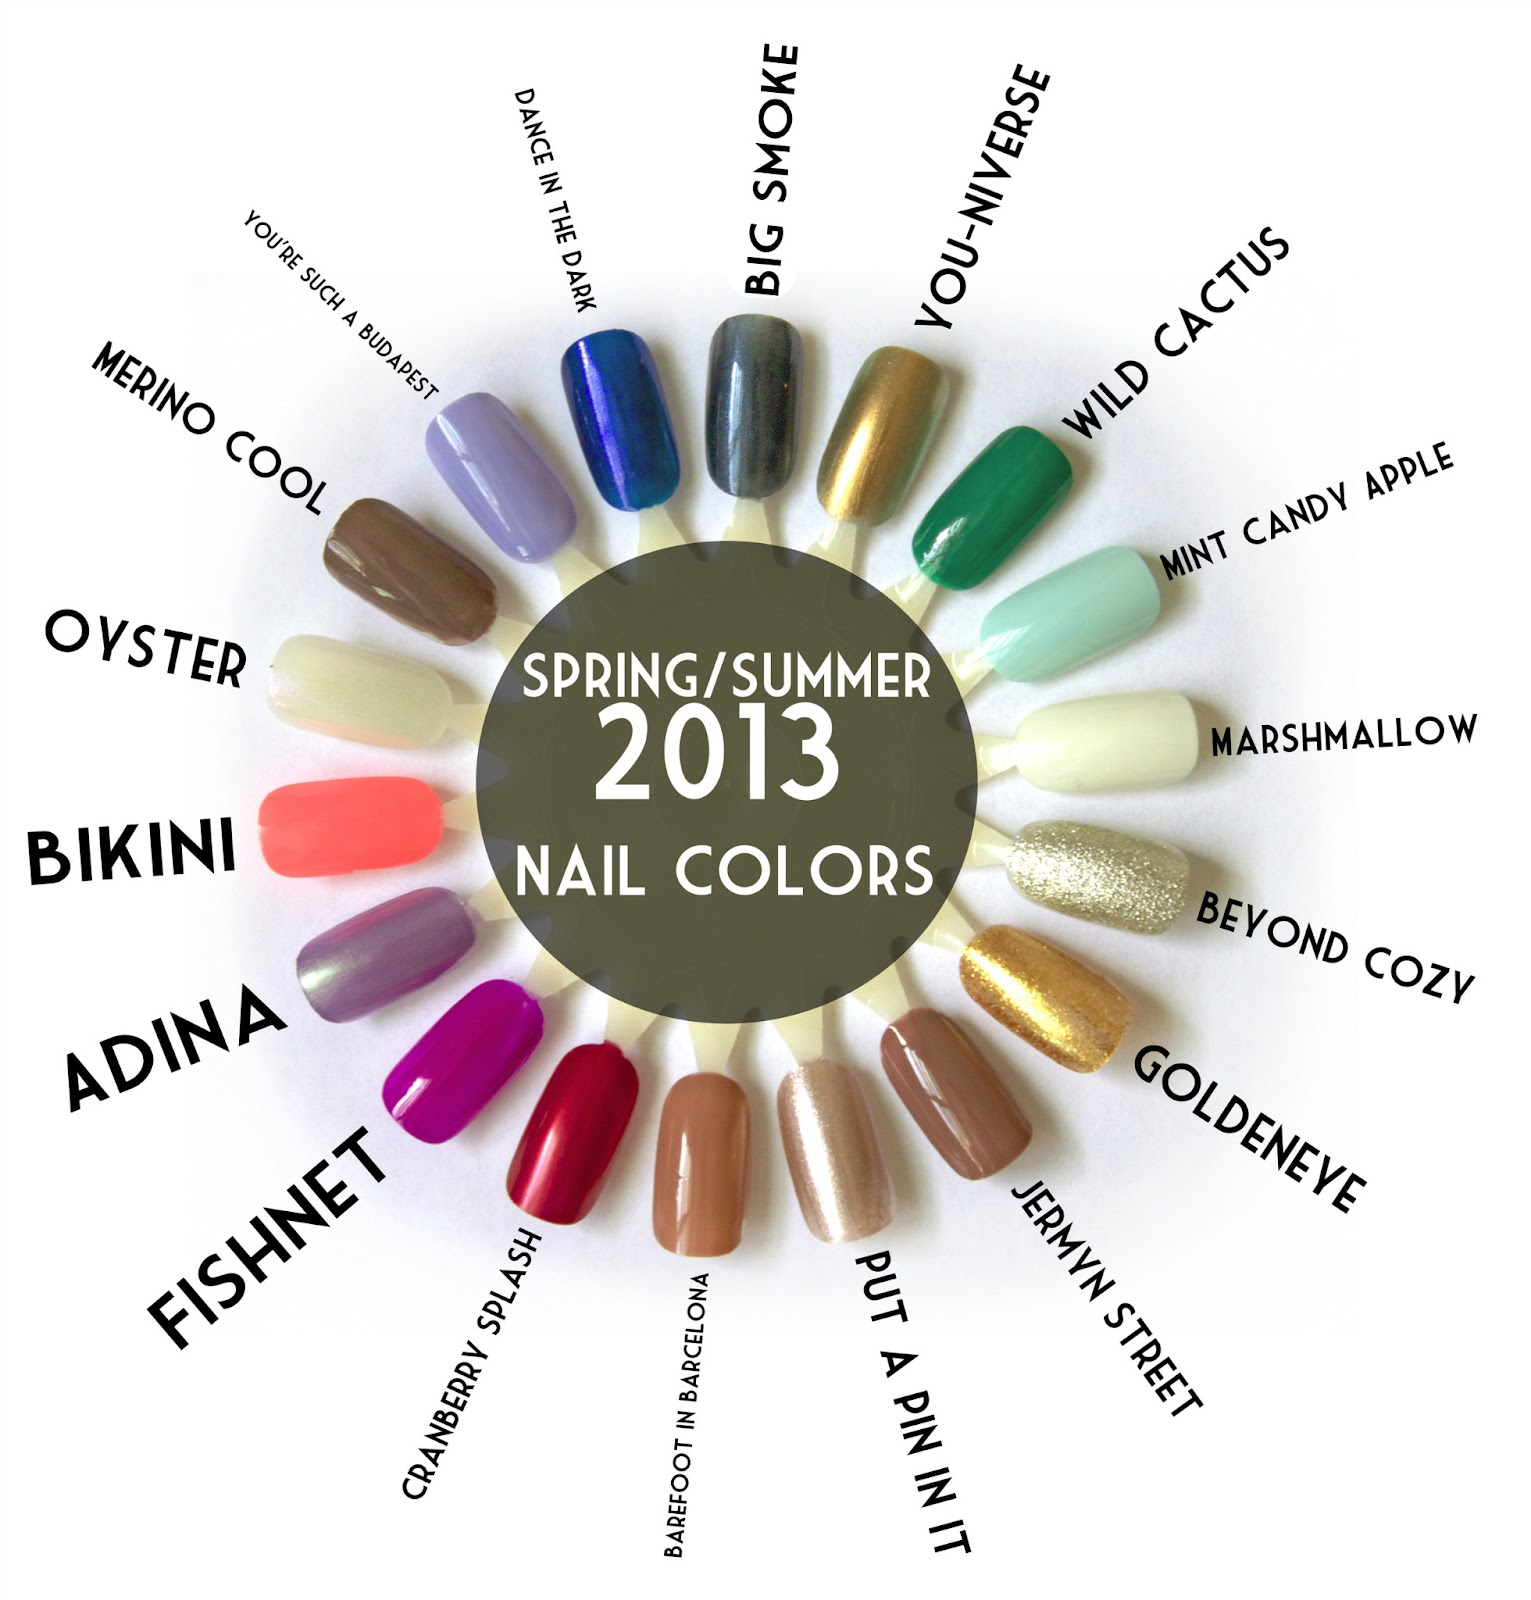 hight resolution of spring summer 2013 nail inspiration with swatches and nail art